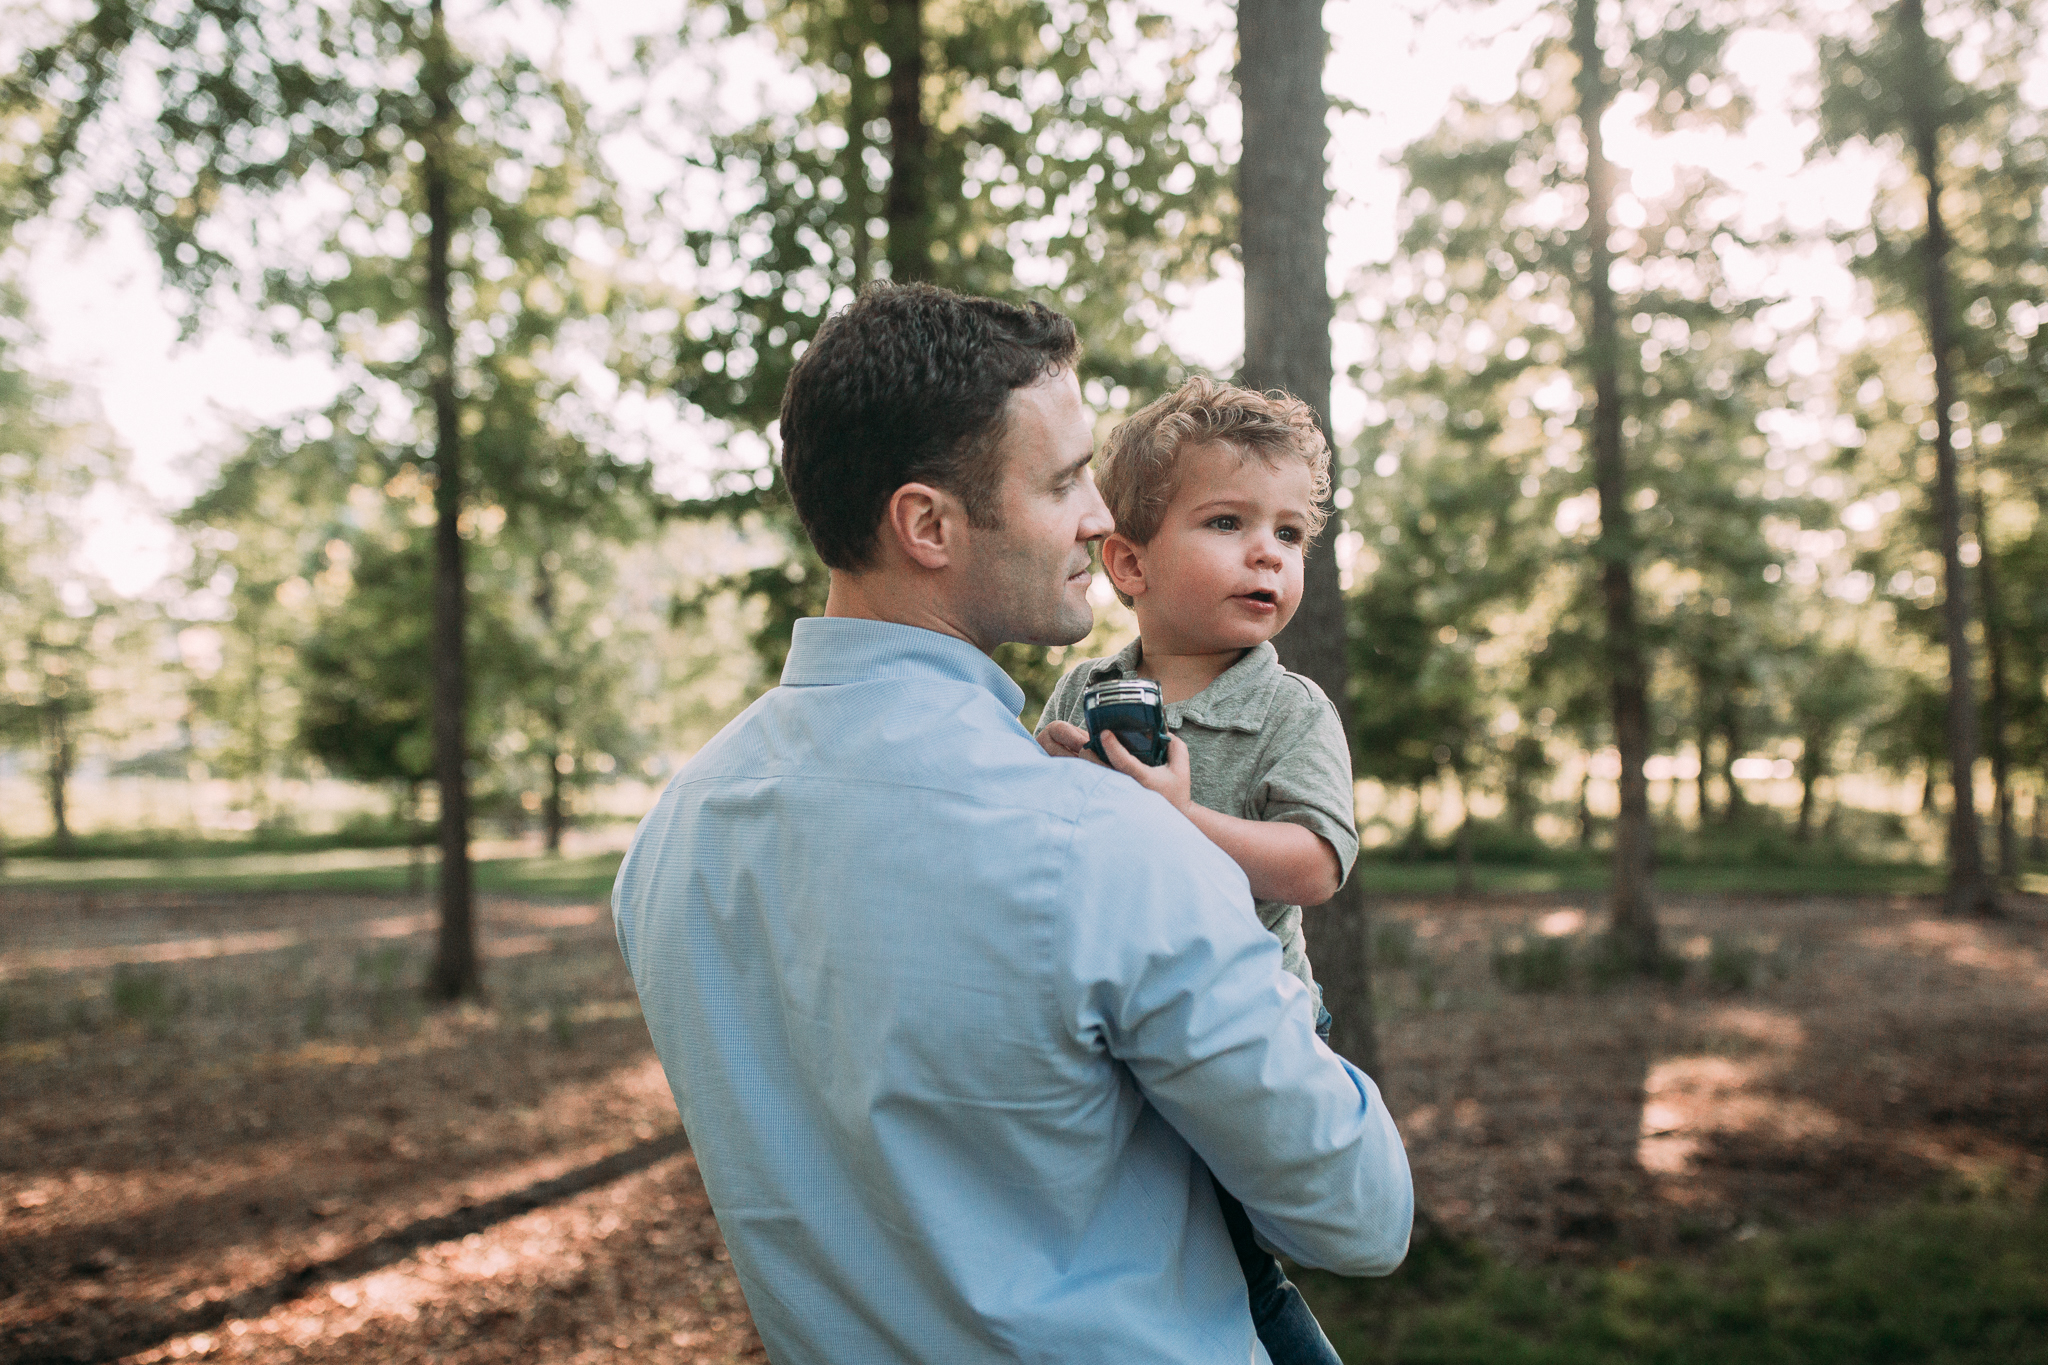 father son outdoor sunset golden hour The Barn at One Loudoun Ashburn Northern Virginia Liifestyle Documentary Family Marti Austin Photography